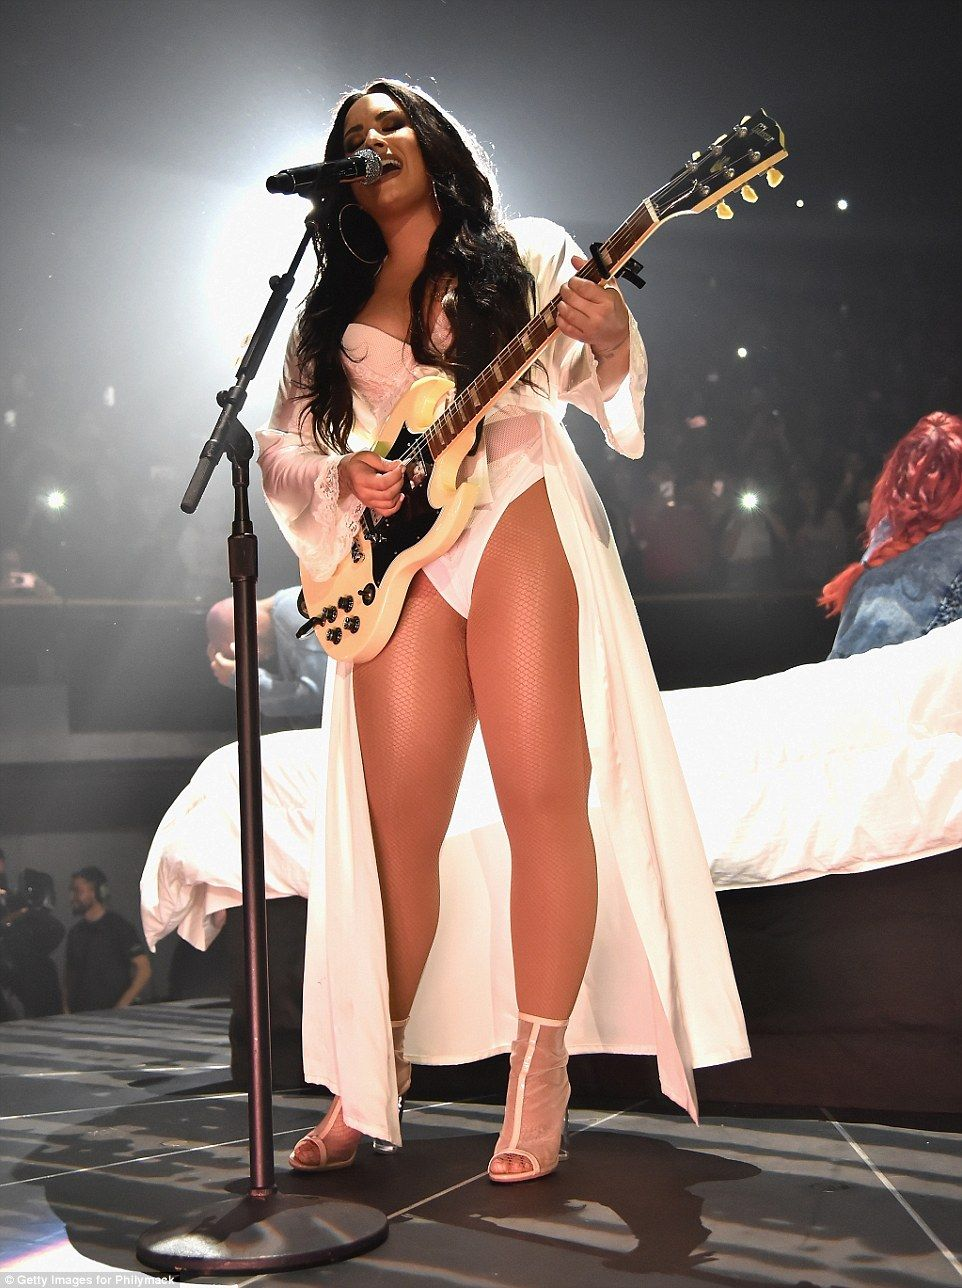 Demi Lovato Wows In Skimpy Outfits On Tell Me You Love Me World Tour She Kicked Off Her 46 Date Tell Me You Love Me World To Demi Lovato Body Demi Lovato